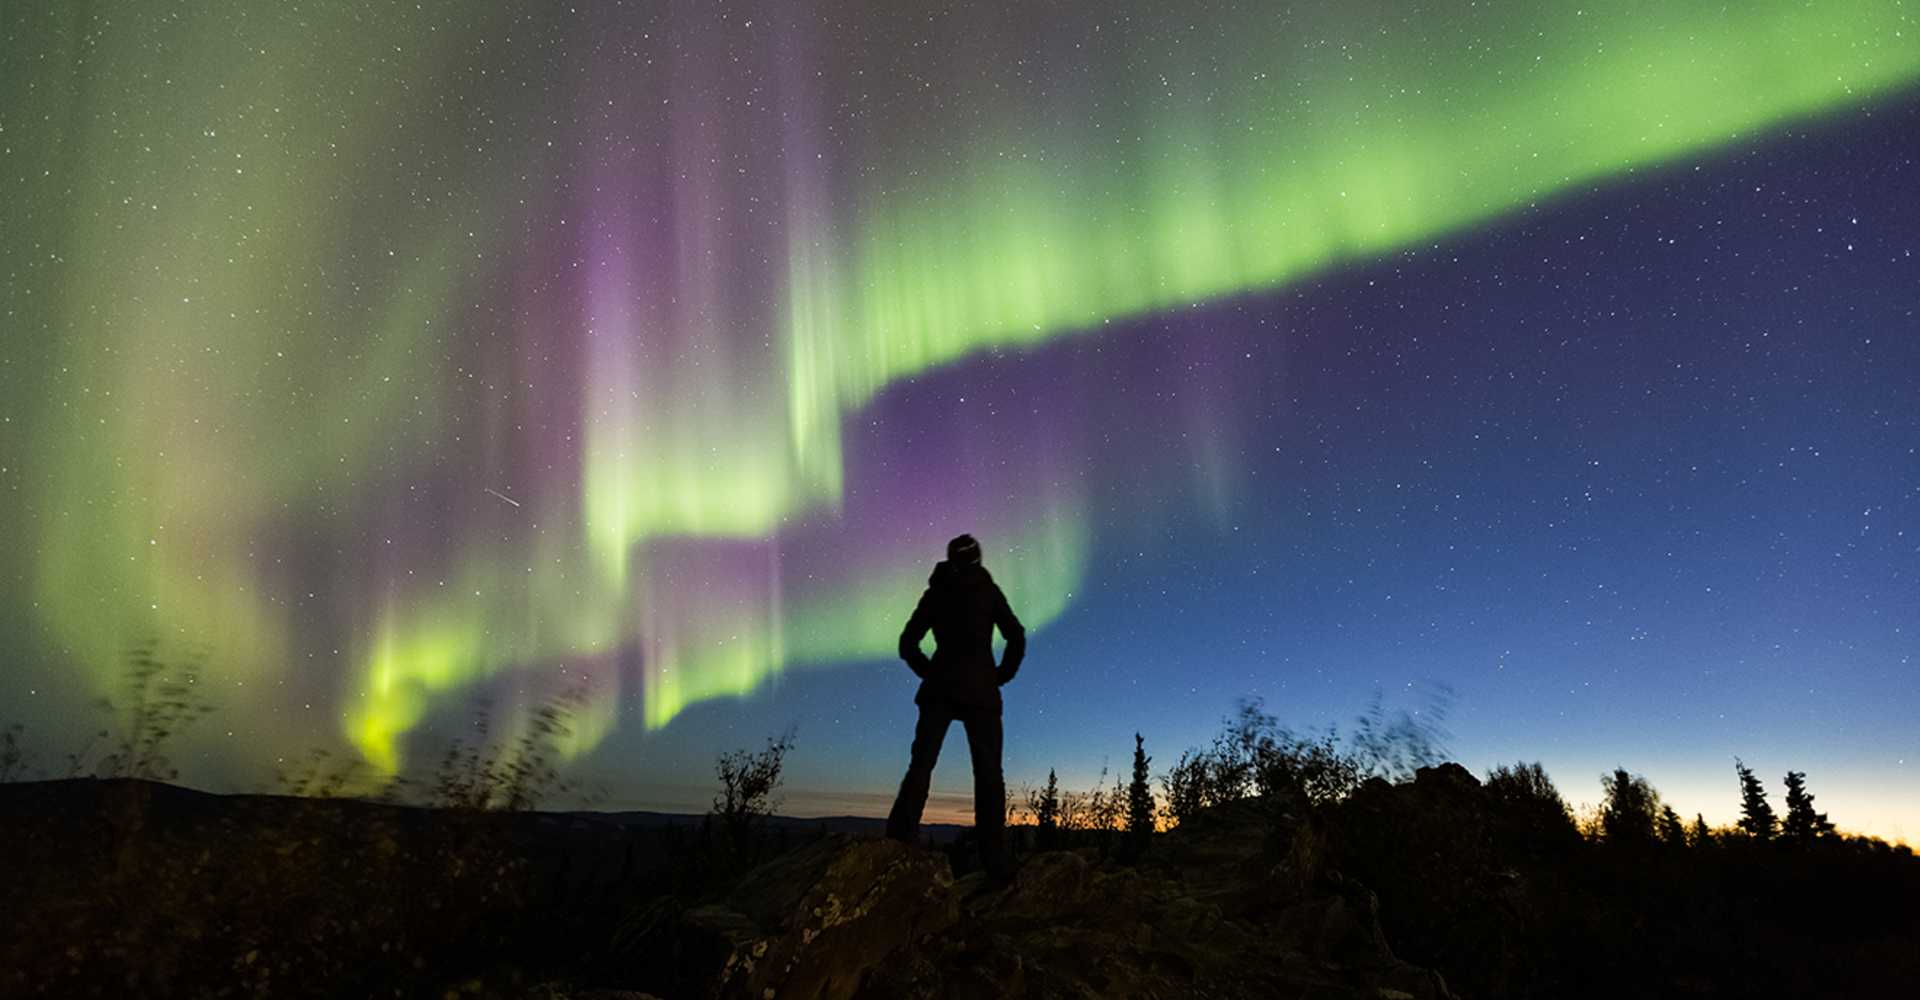 aurora borealis season explore fairbanks alaska